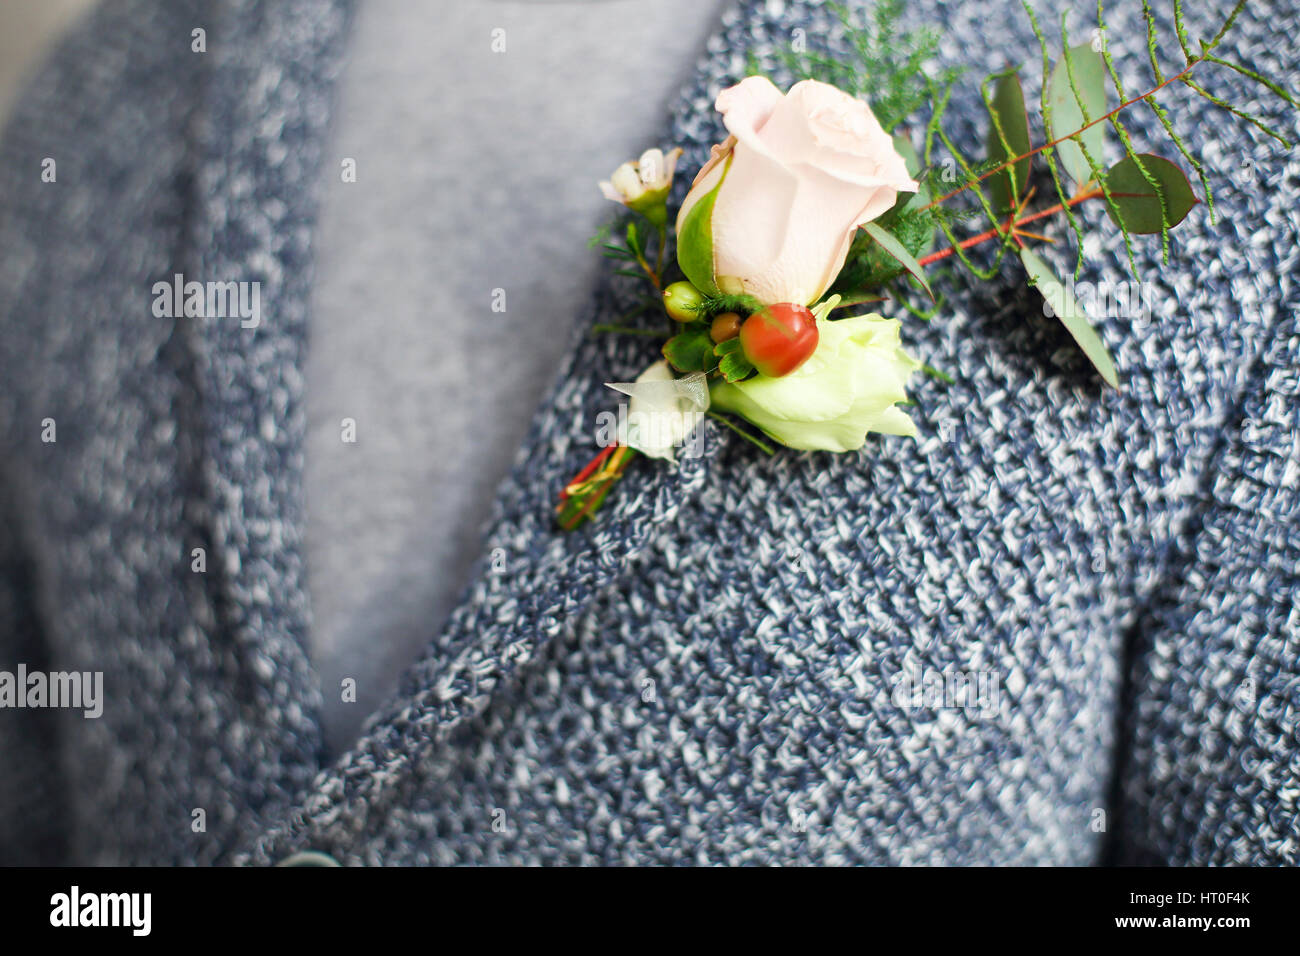 Gentle groom boutonniere with roses and beads. Close up Stock Photo